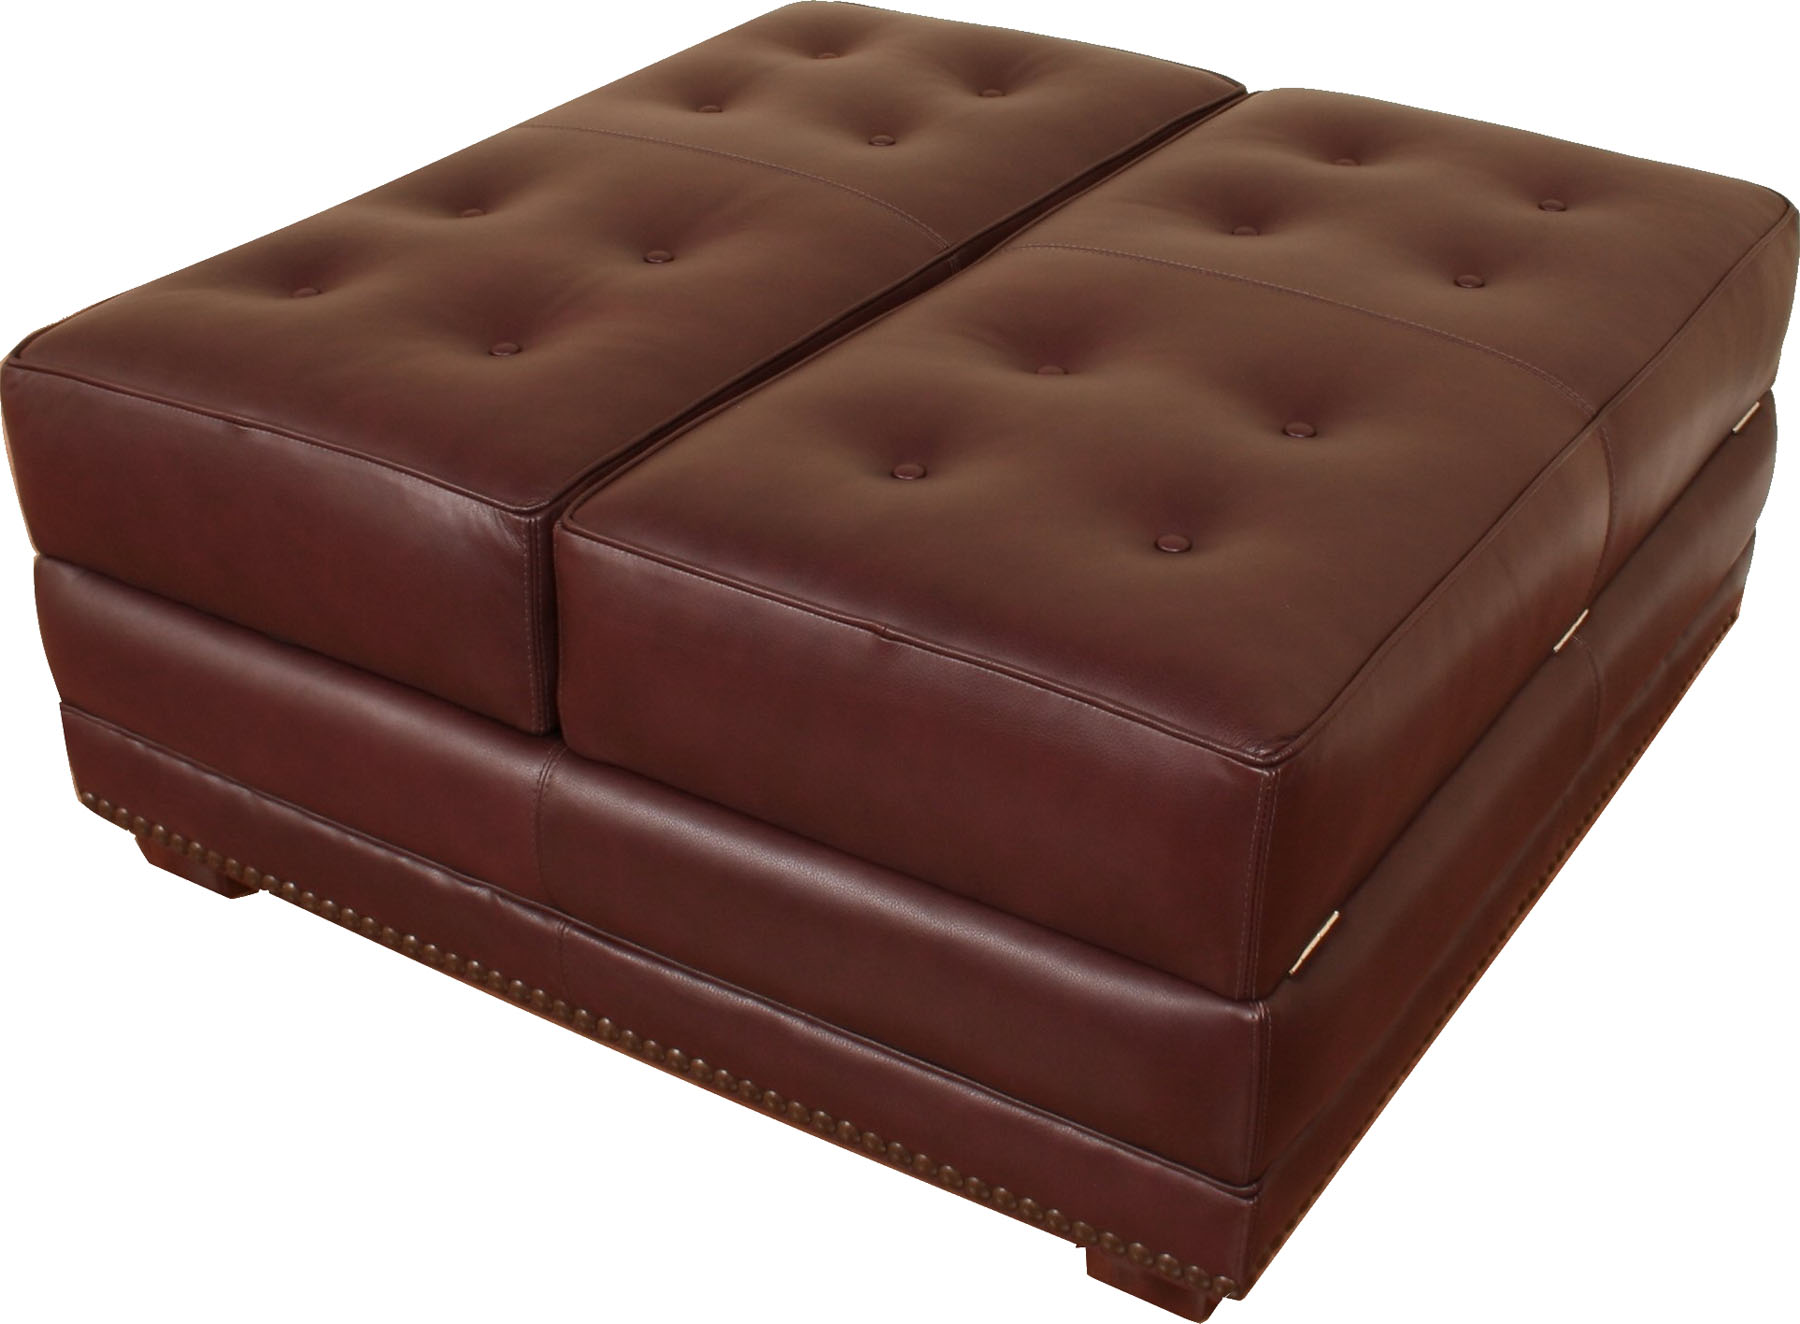 976 square leather ottoman leather creations furniture custom leather furniture in atlanta austin chicago - Brown Leather Ottoman